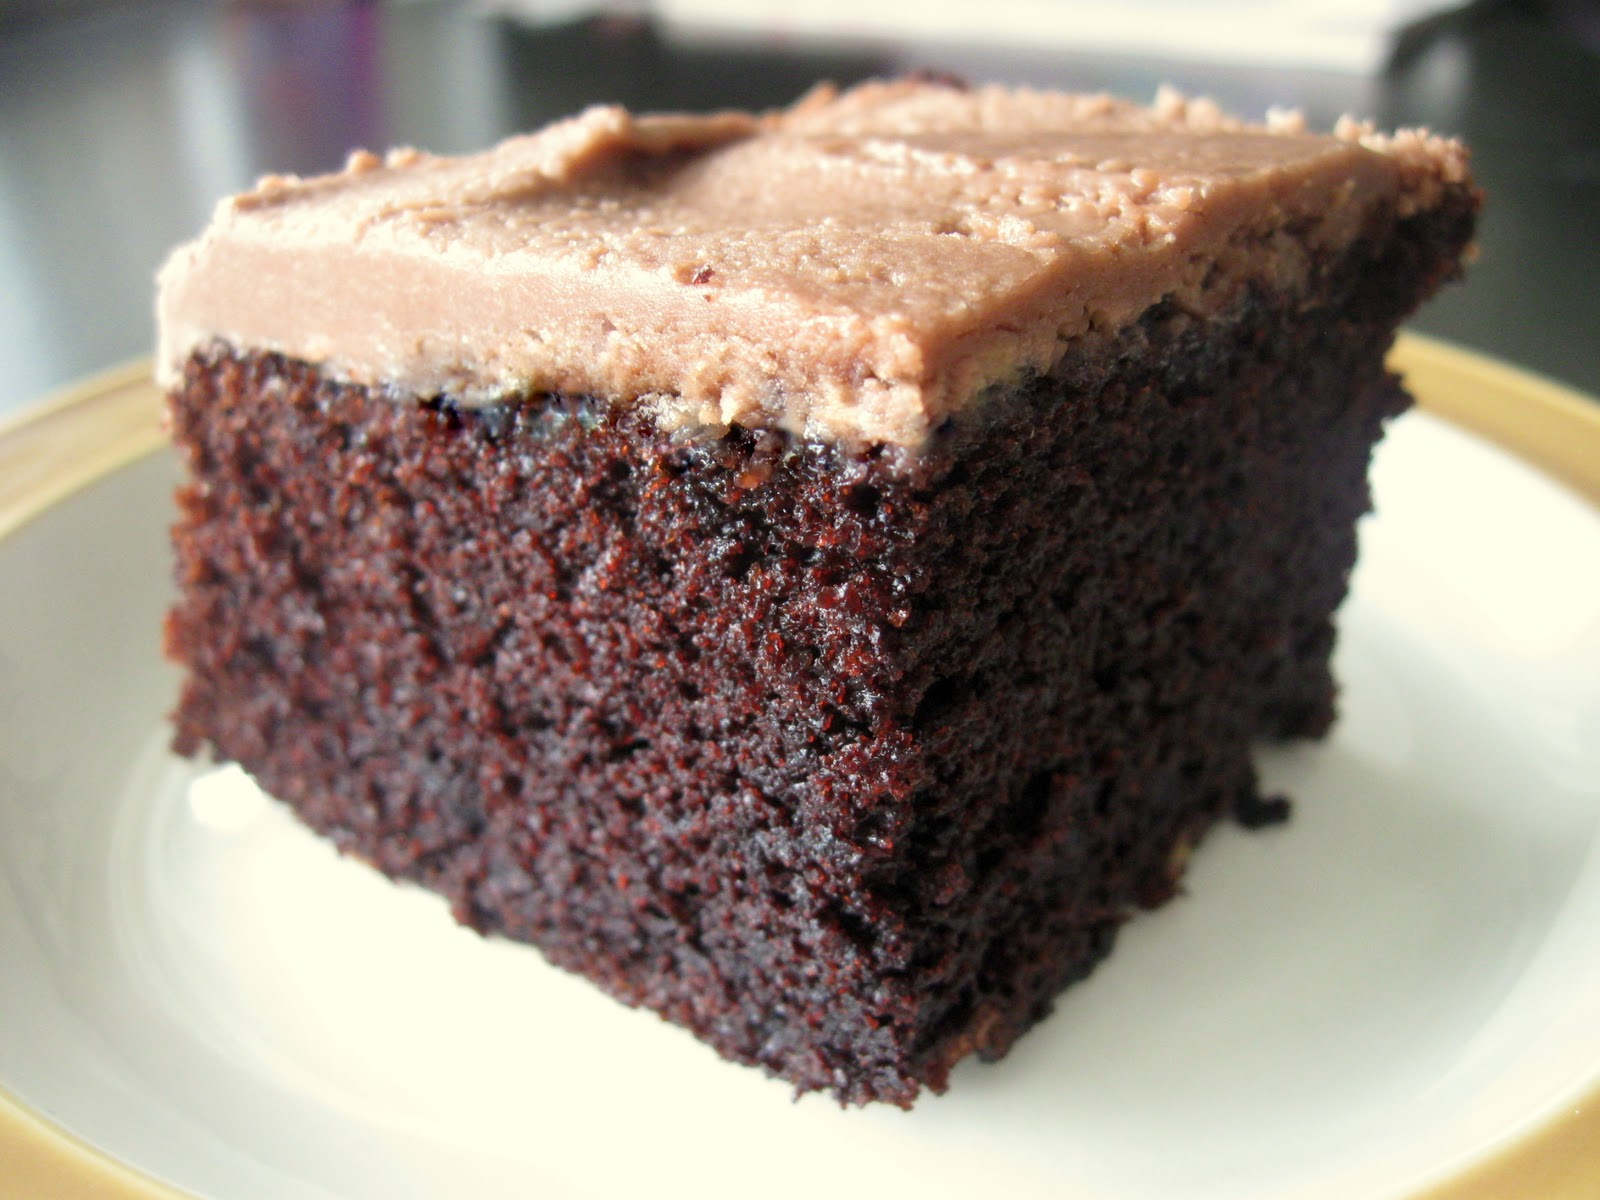 ... : Treat Bag Tuesday...er... Wednesday - Black Magic Chocolate Cake